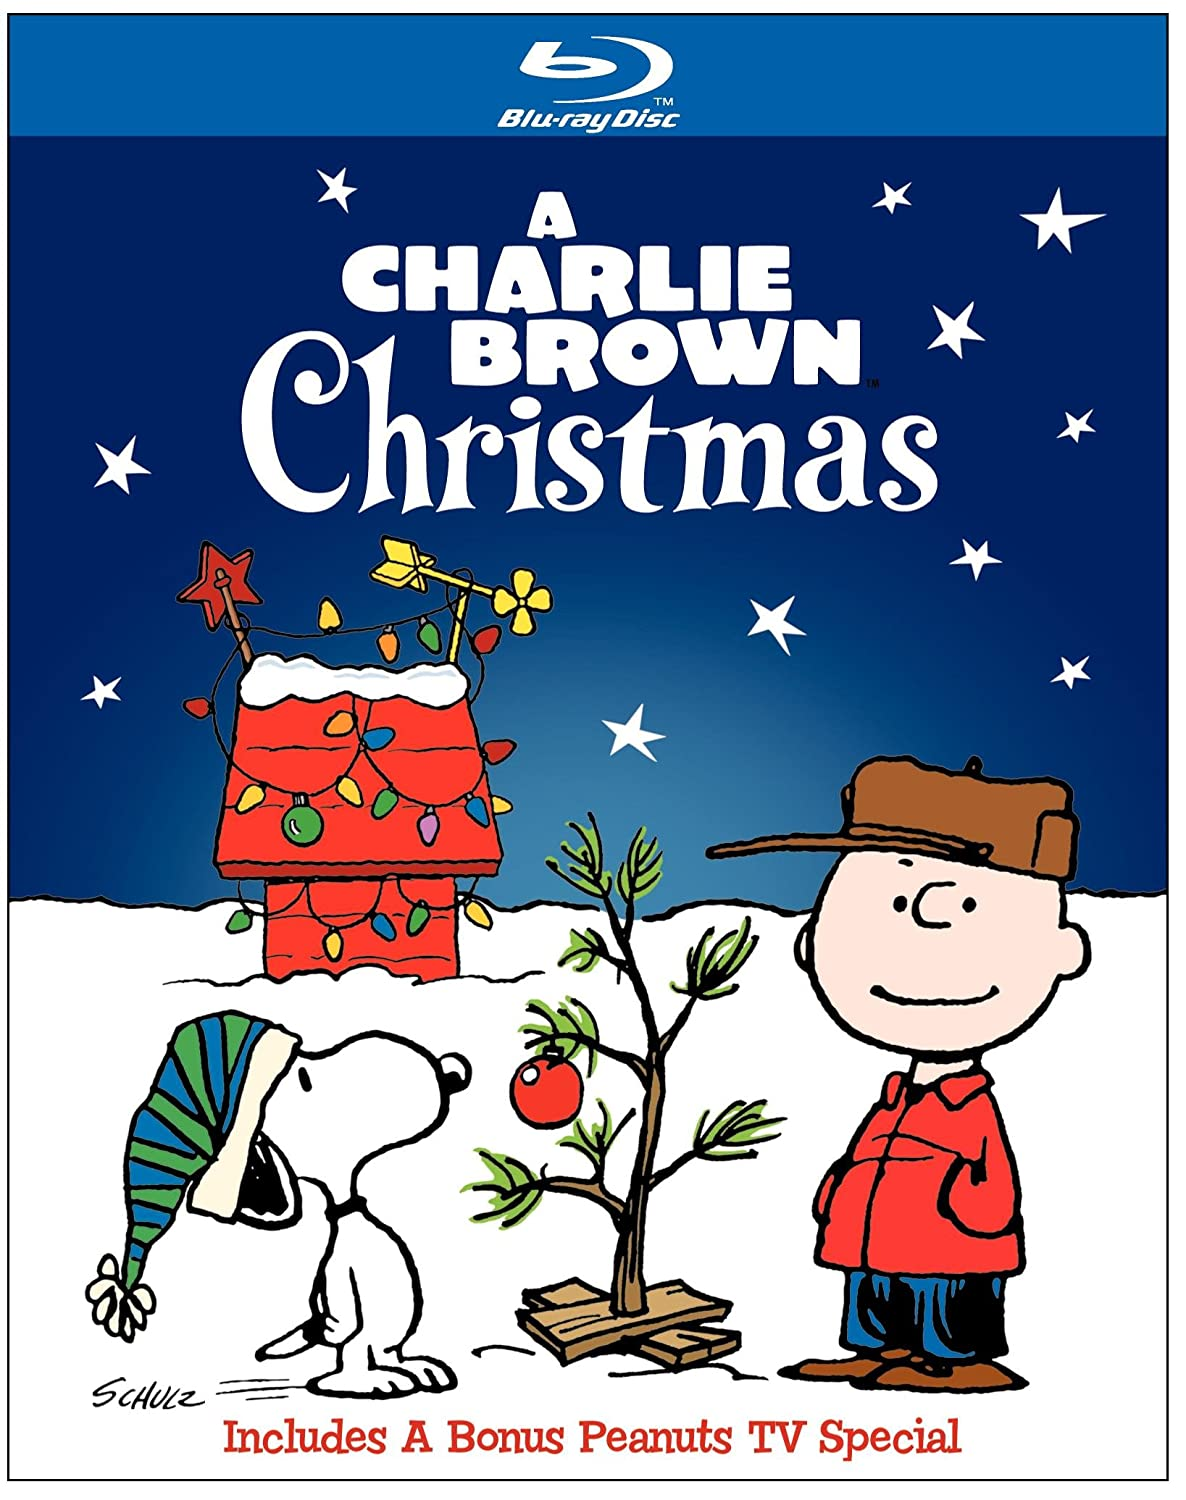 Amazon.com: A Charlie Brown Christmas (Blu-Ray): Various: Movies & TV